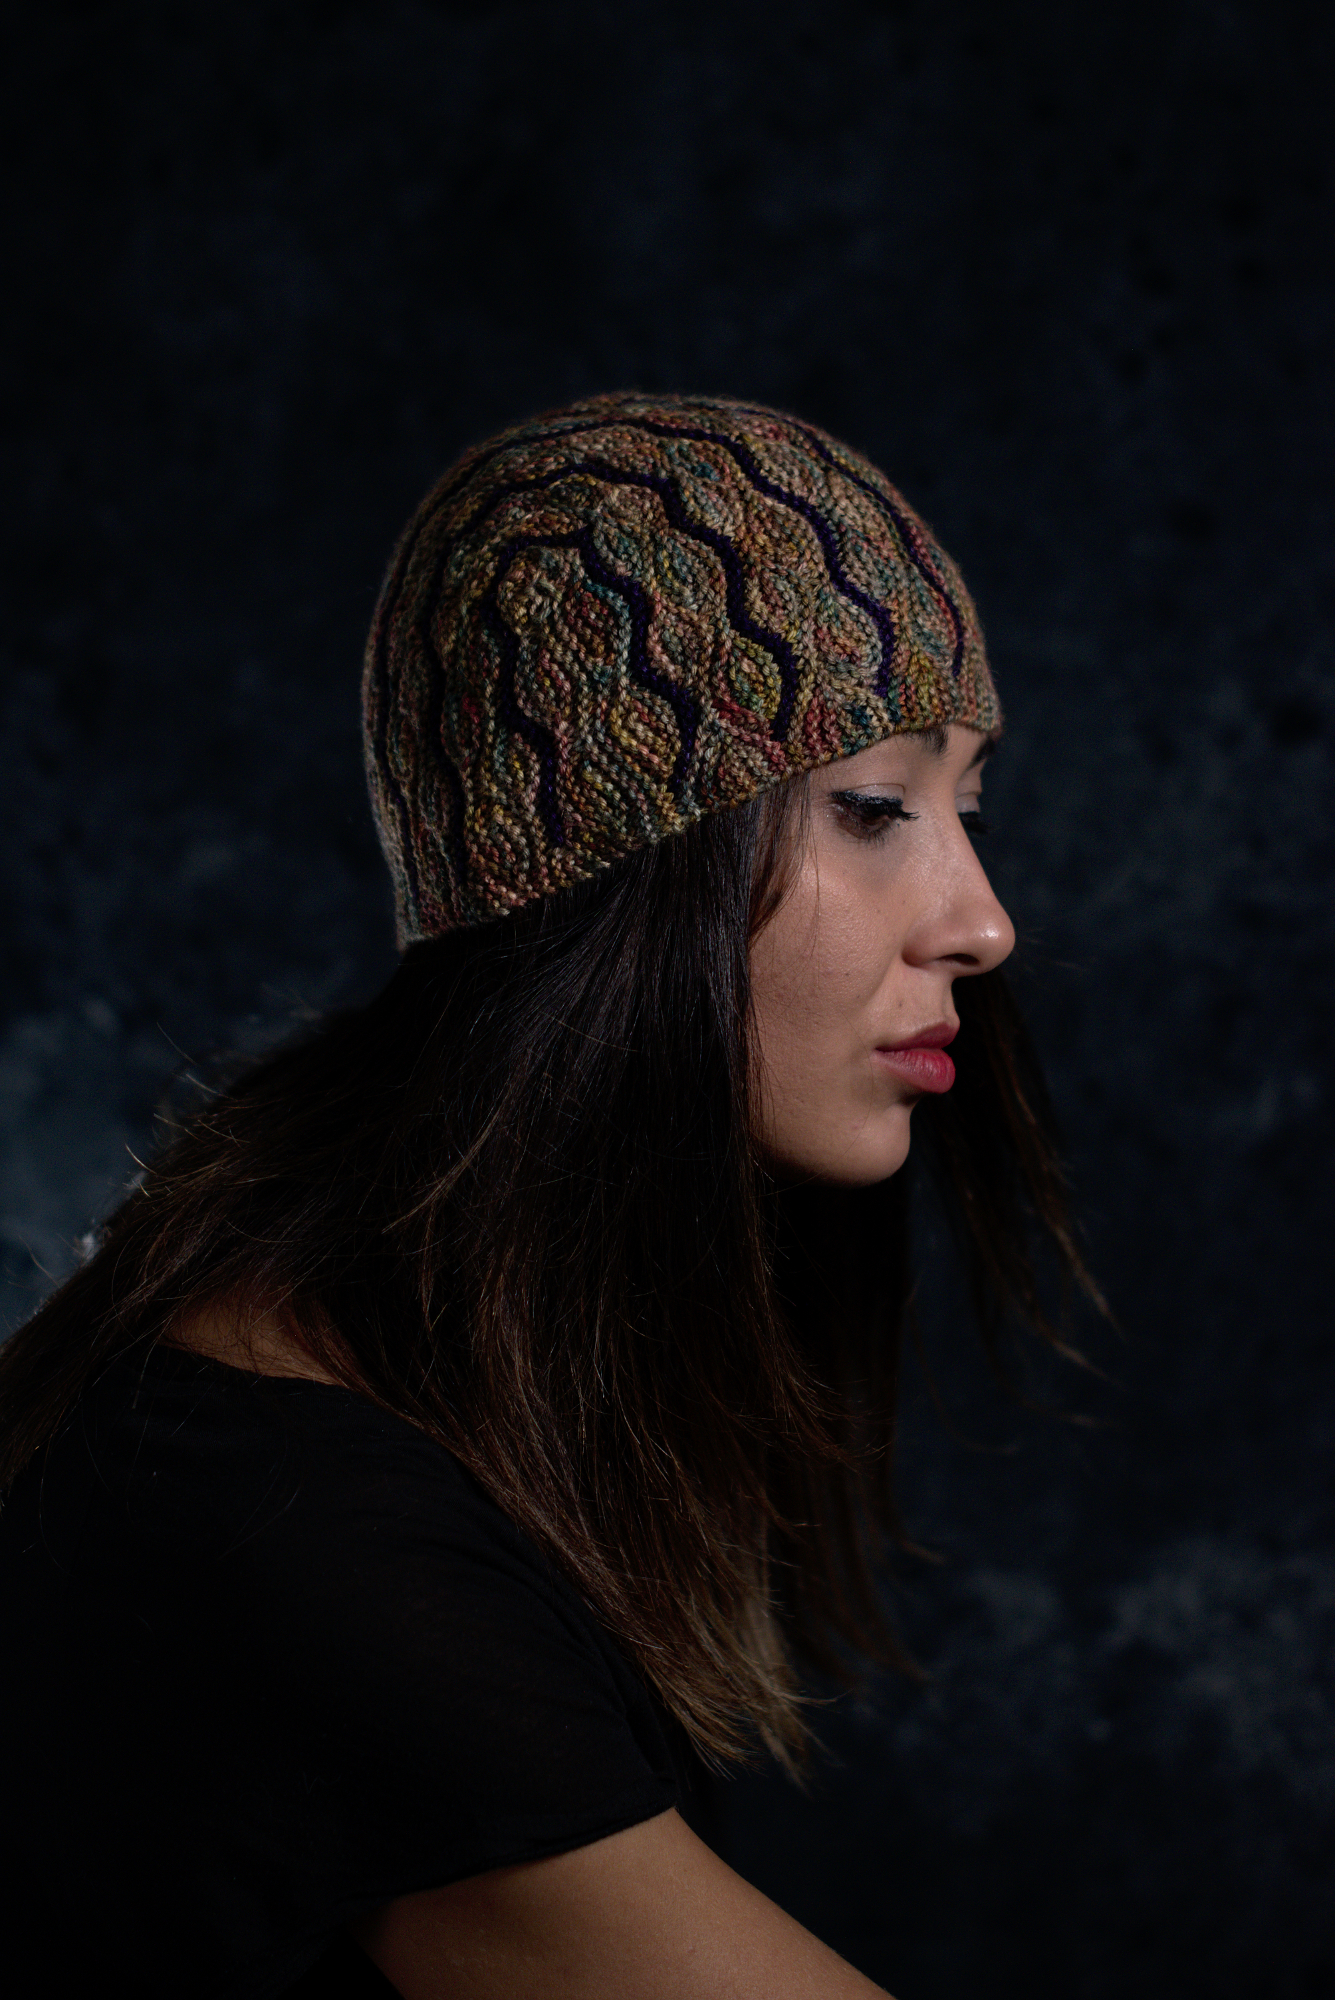 Undulous sideways knit short row striped hat knitting pattern